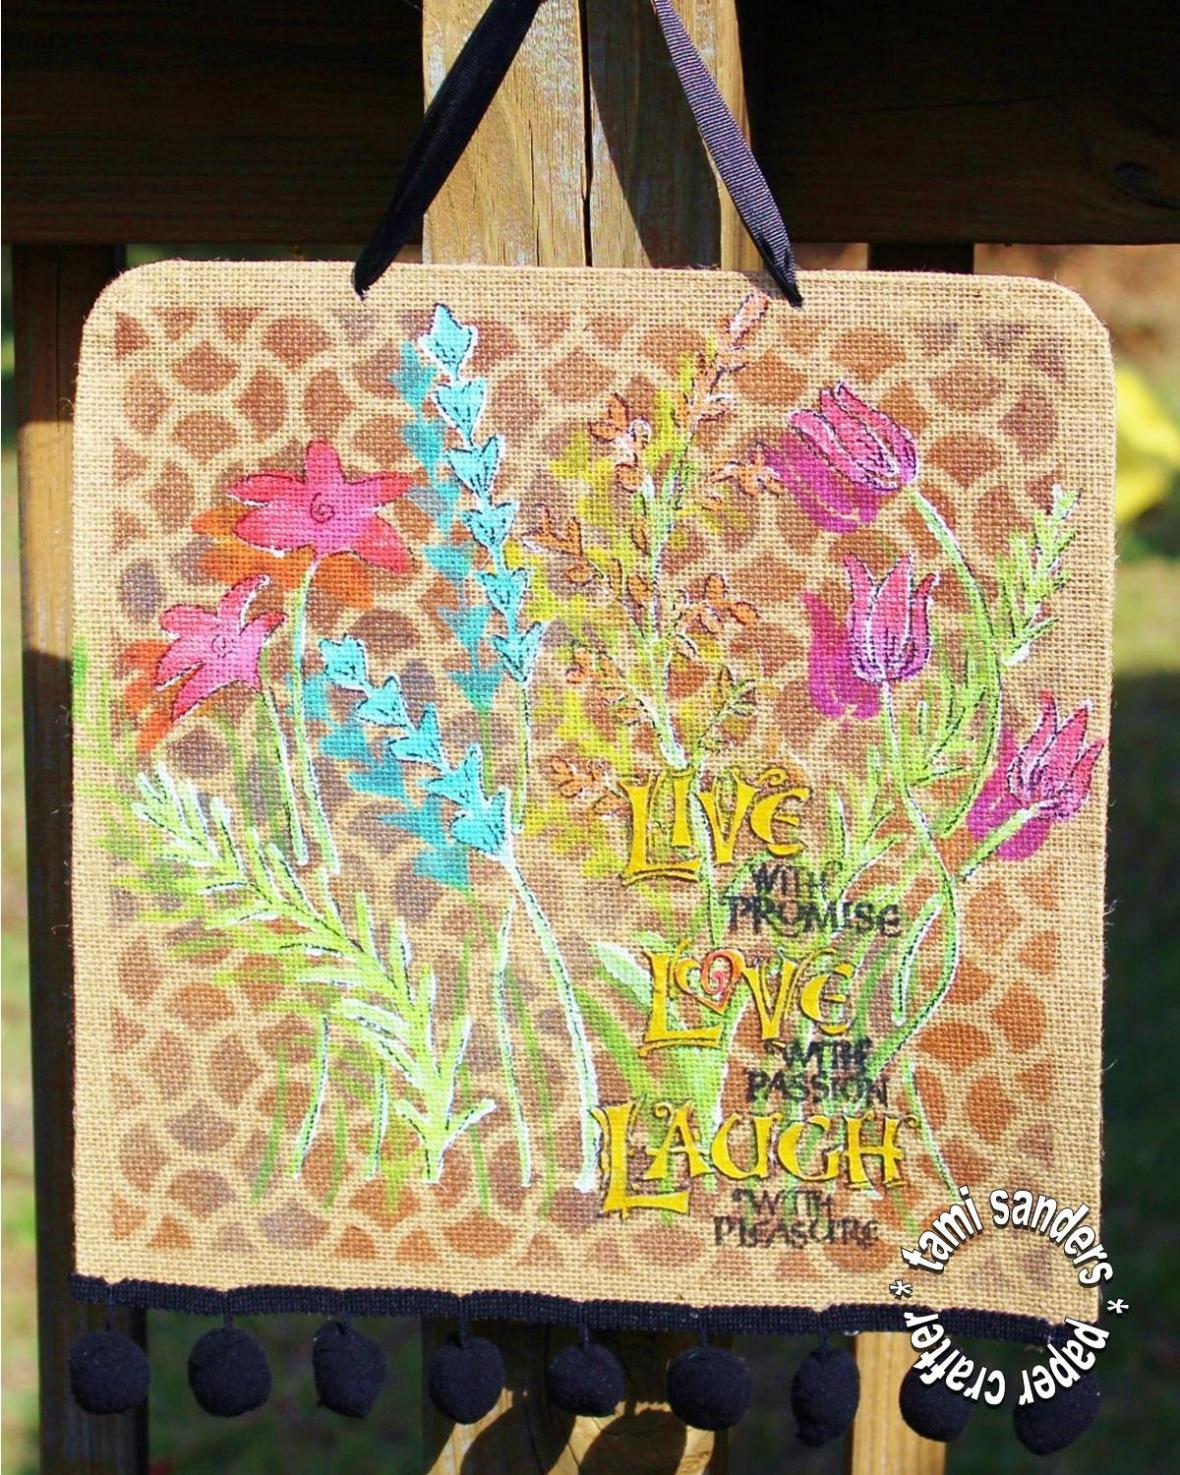 live love laugh wallhanging - tcw,the crafter's workshop,home decor,burlap decor,garden, flowers, inked stencil,vera style,tami sanders - 1 shwm